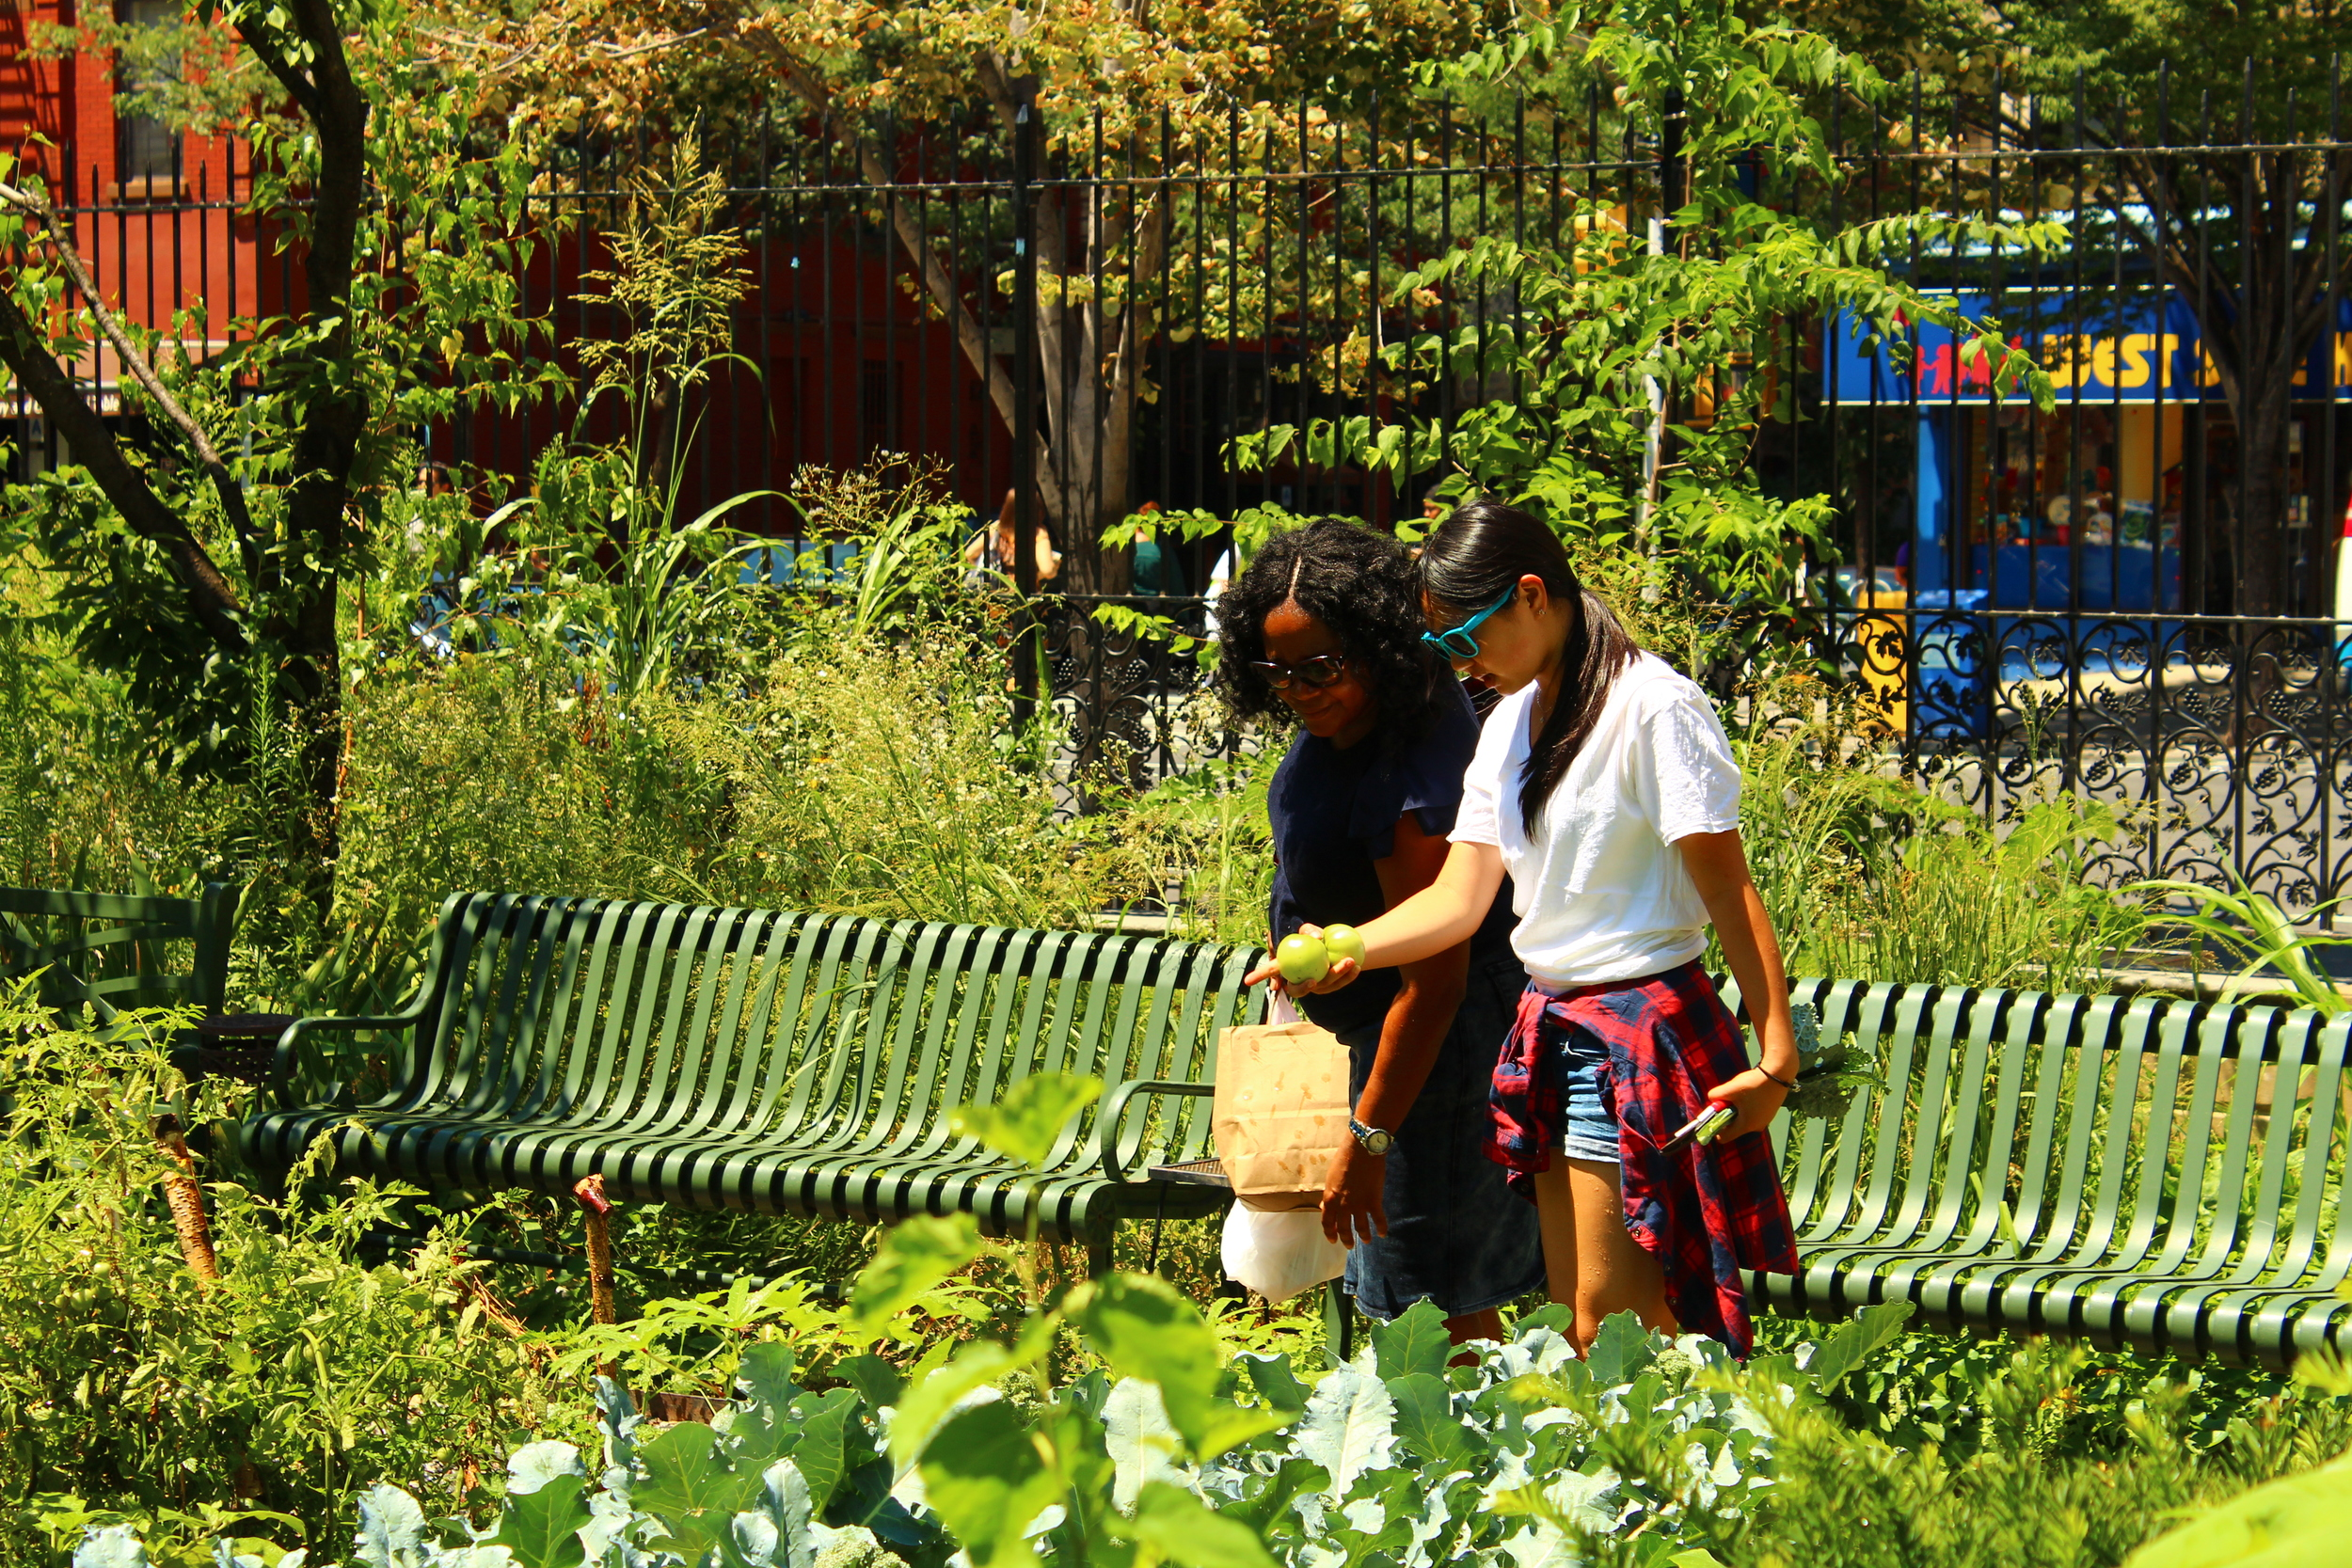 Sophomore Winnie Zhu discusses the harvest with a member of the community